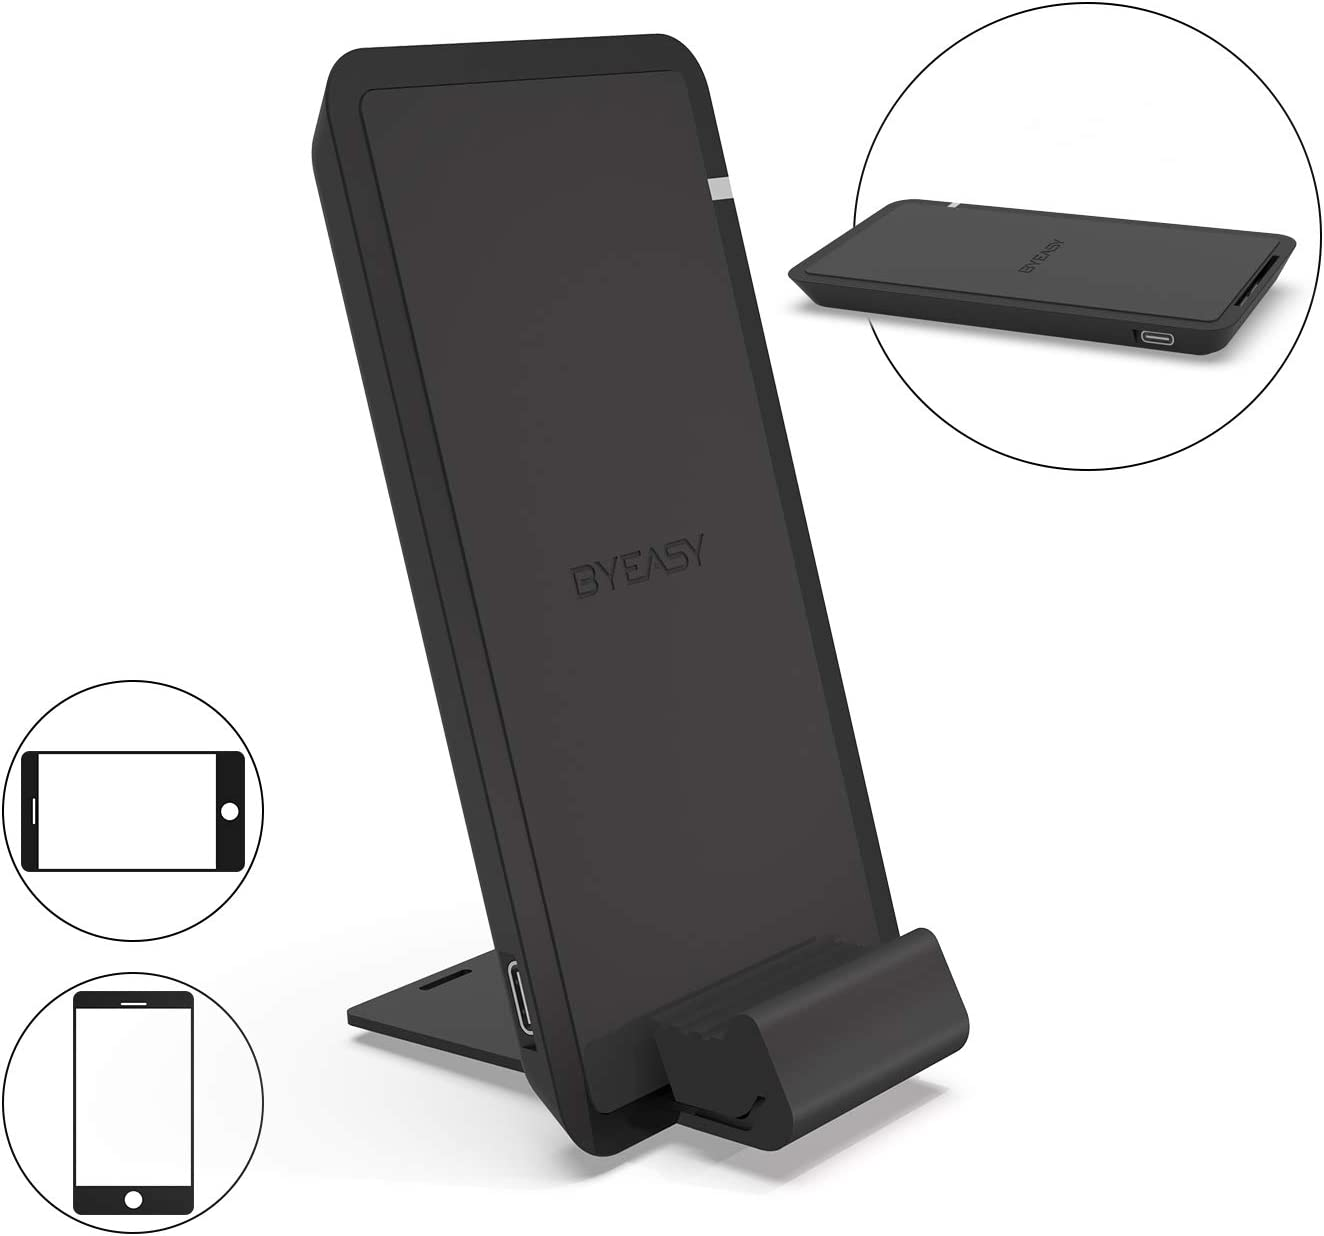 10W Wireless Charging Stand No AC Adapter BYEASY Wireless Charger Black Compatible iPhone XR//Xs Max//XS//X//8//8 Plus Fast-Charging Galaxy S10//S9//S9+//S8//S8+//Note 9//Note 8 PowerWave Stand